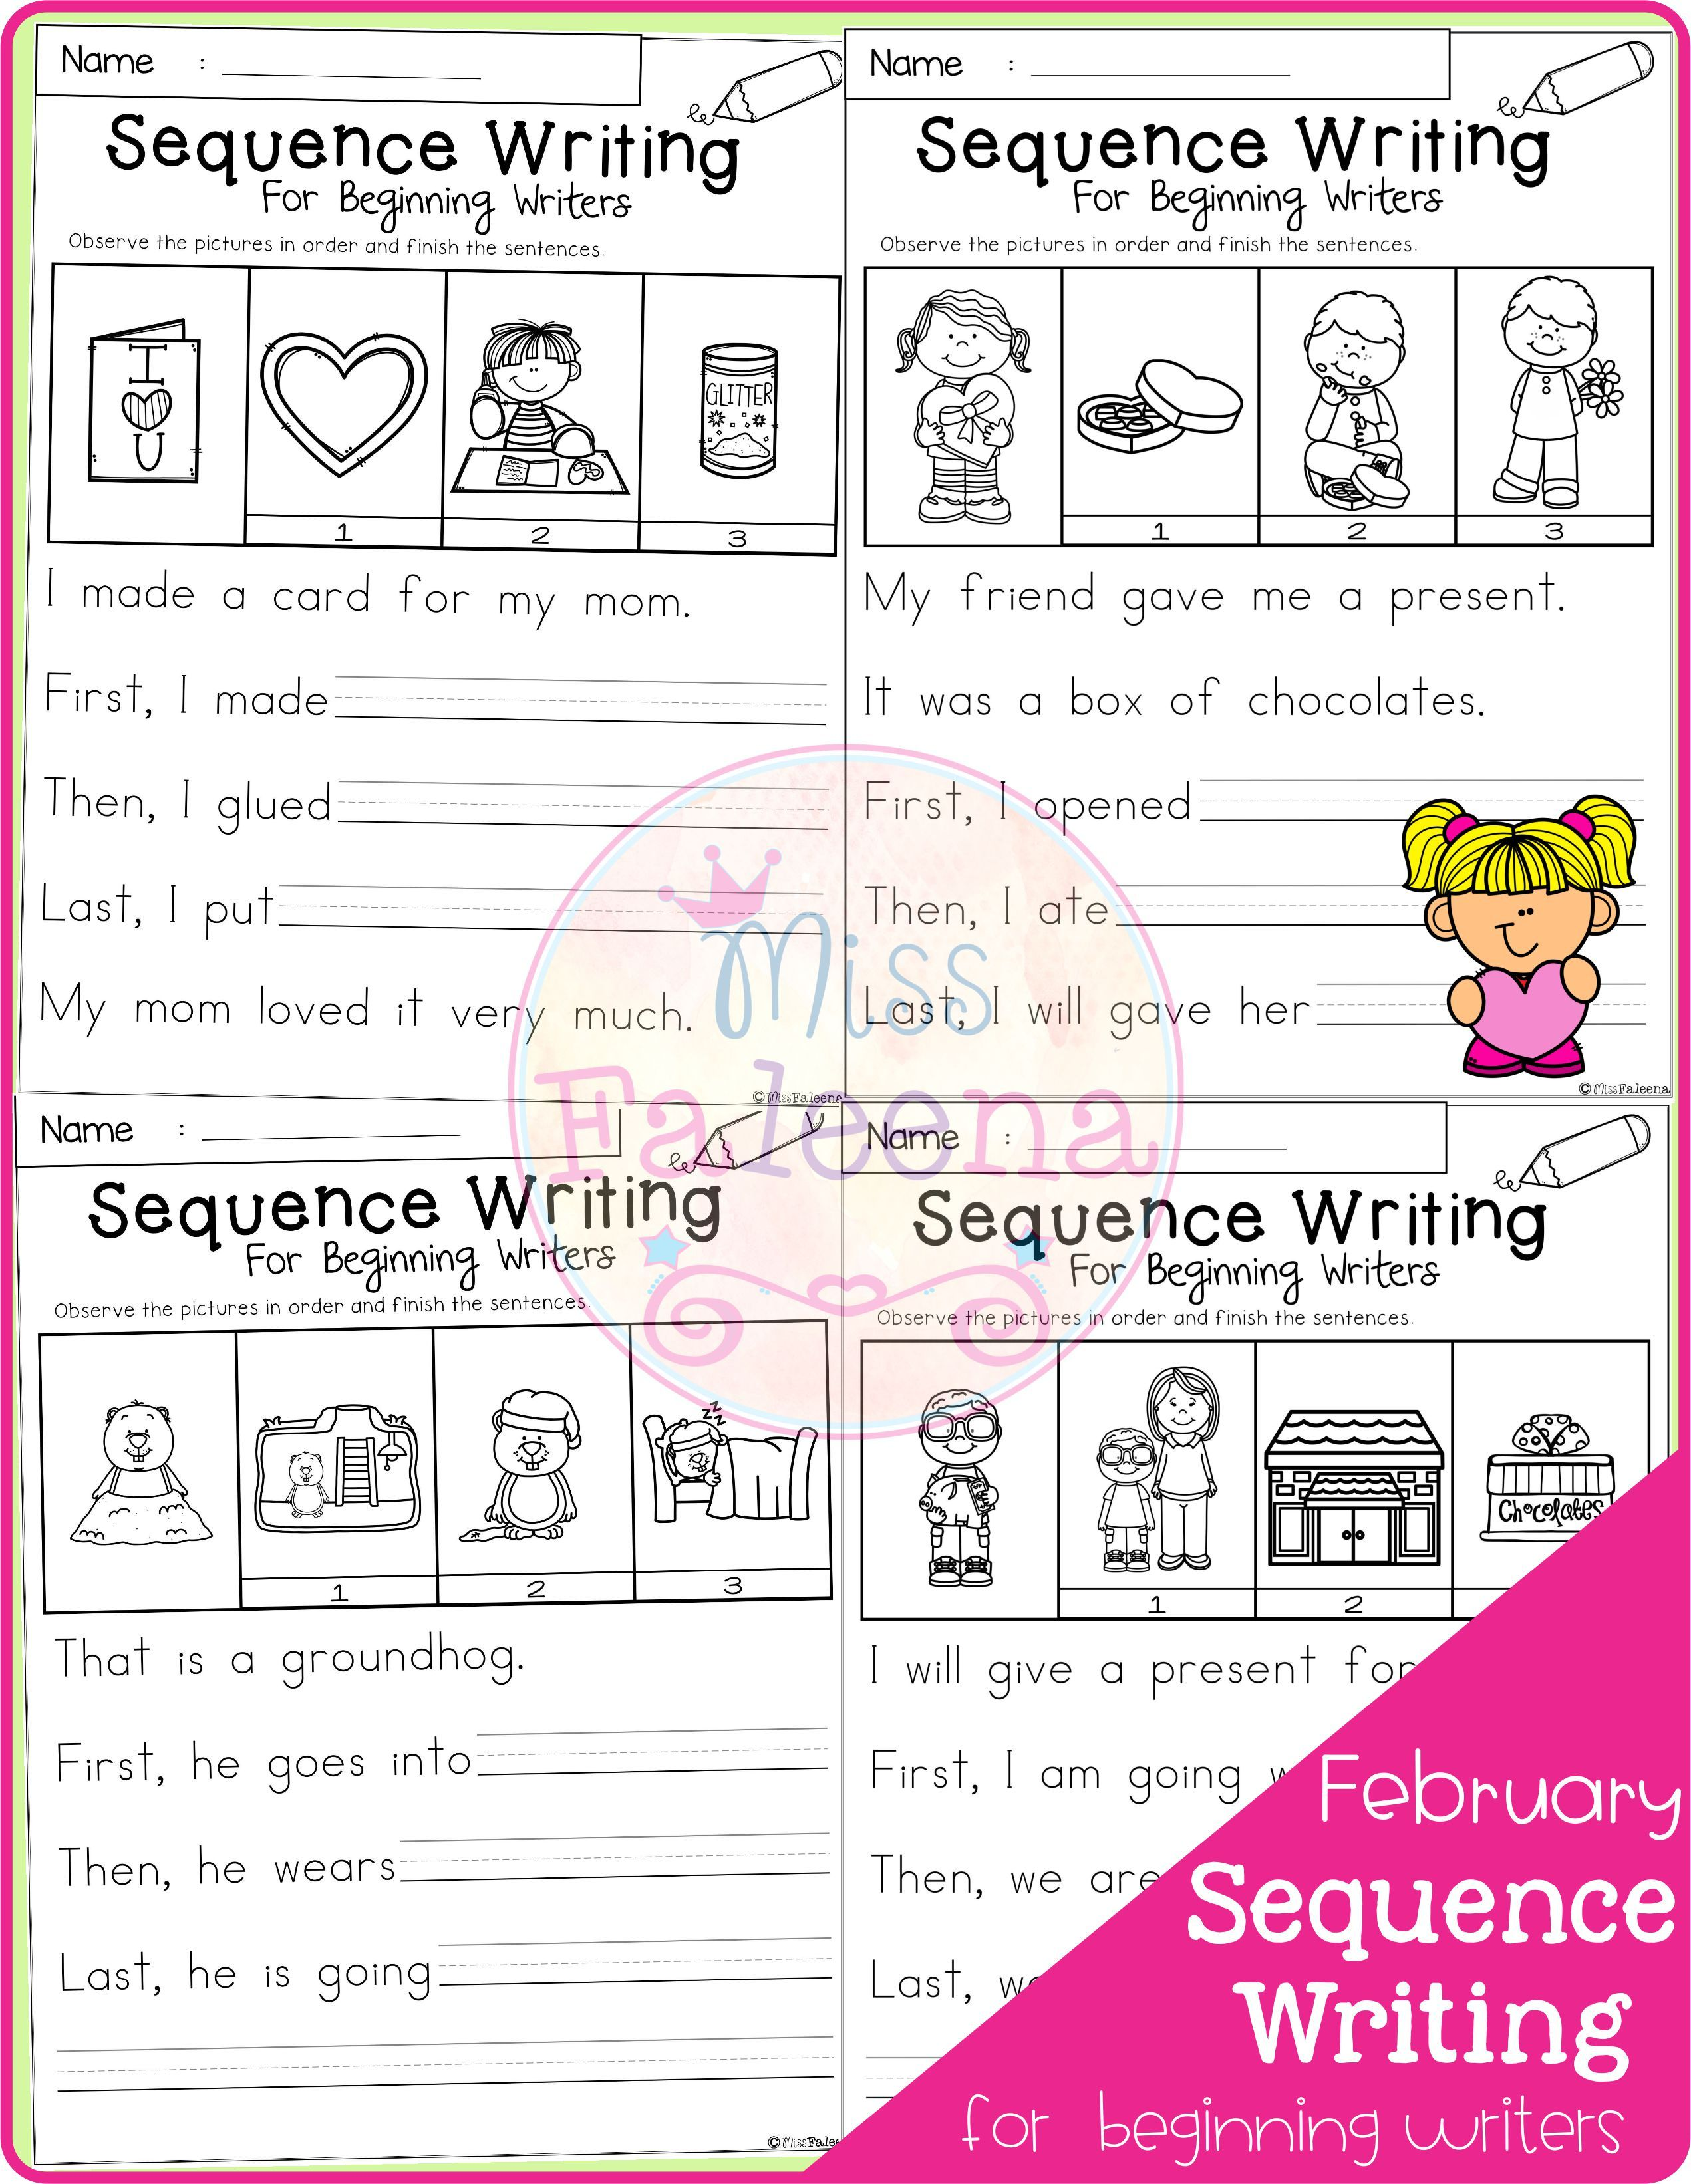 February Sequence Writing For Beginning Writers Di